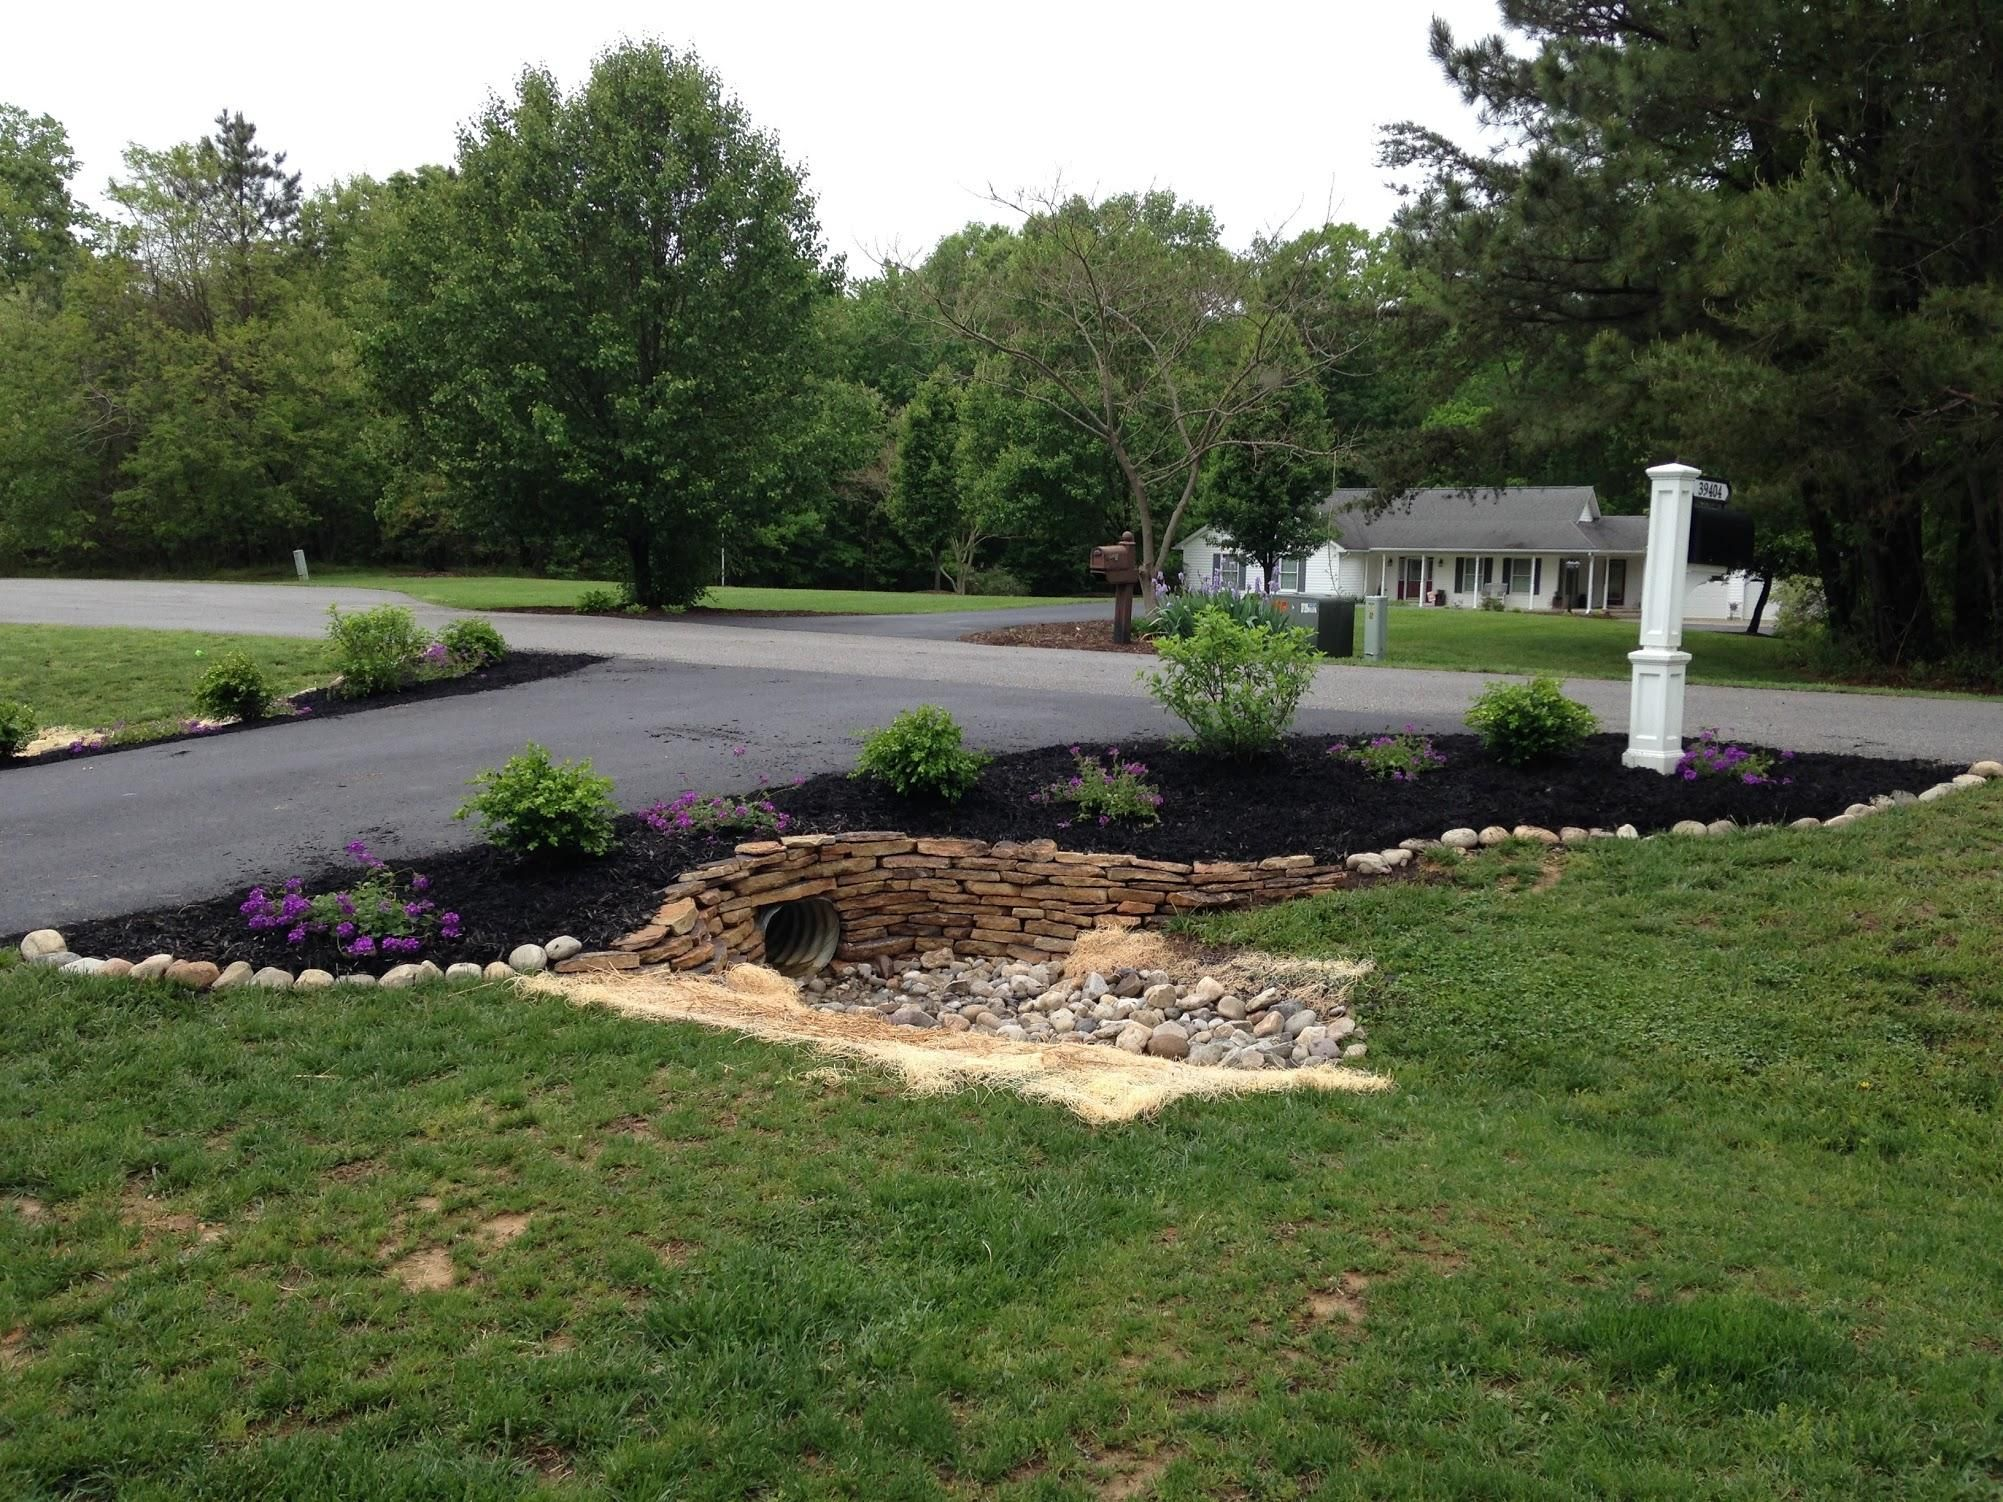 driveway culvert landscaping driveways landscaping and. Black Bedroom Furniture Sets. Home Design Ideas